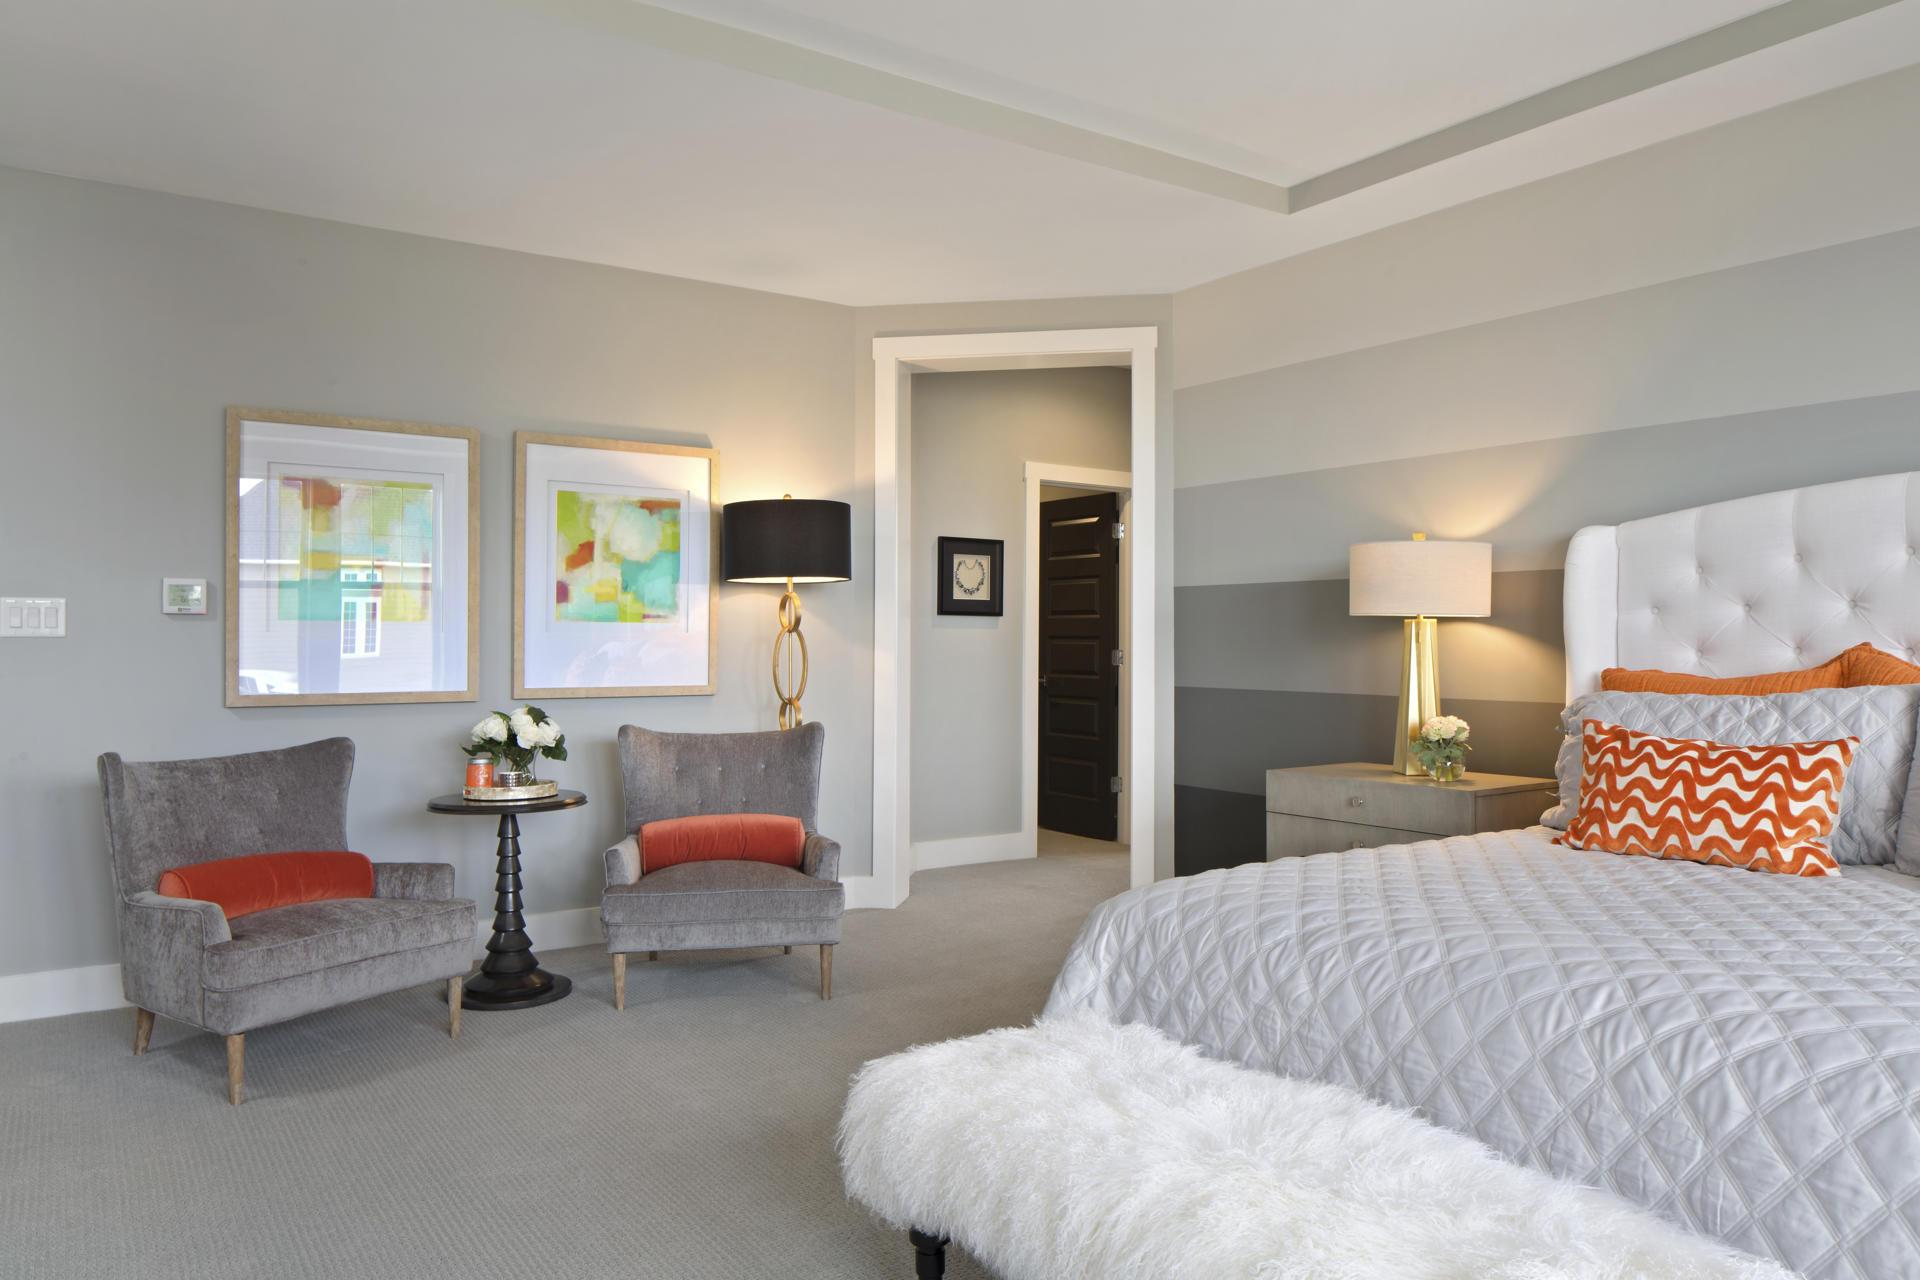 Bedroom featured in the Monticello By Drees Homes in Cleveland, OH